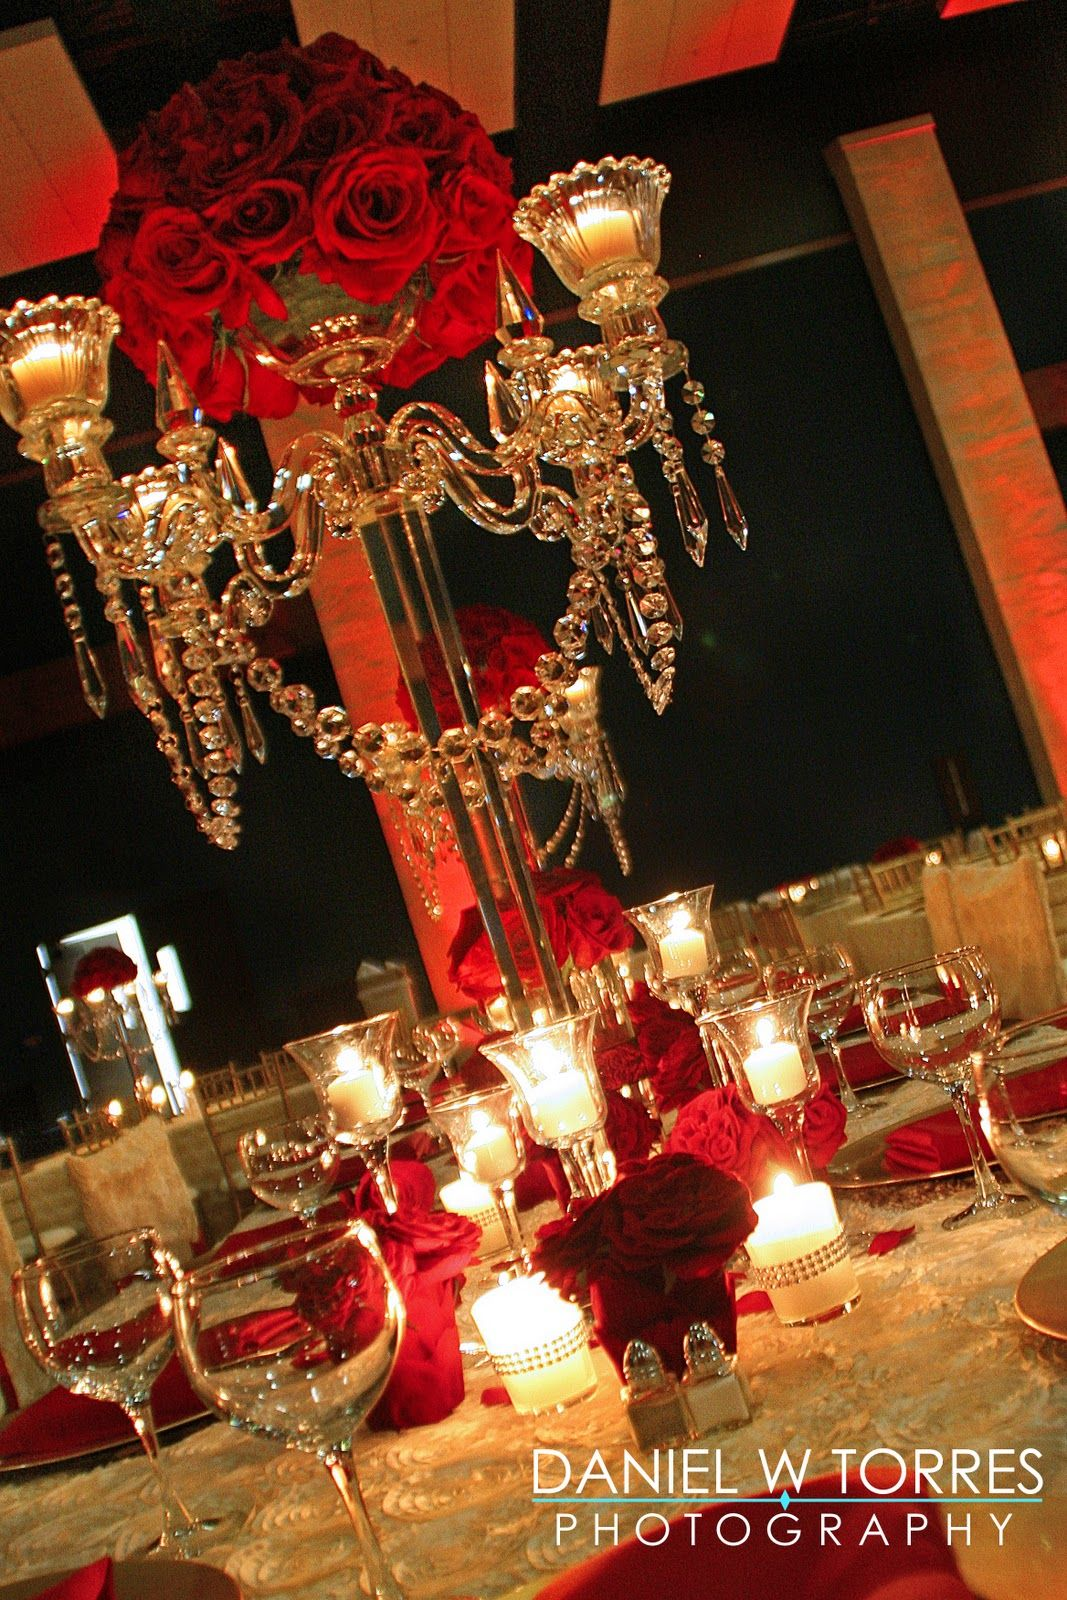 Red roses and candle beauty and the beast wedding reception idea red roses and candle beauty and the beast wedding reception idea junglespirit Images